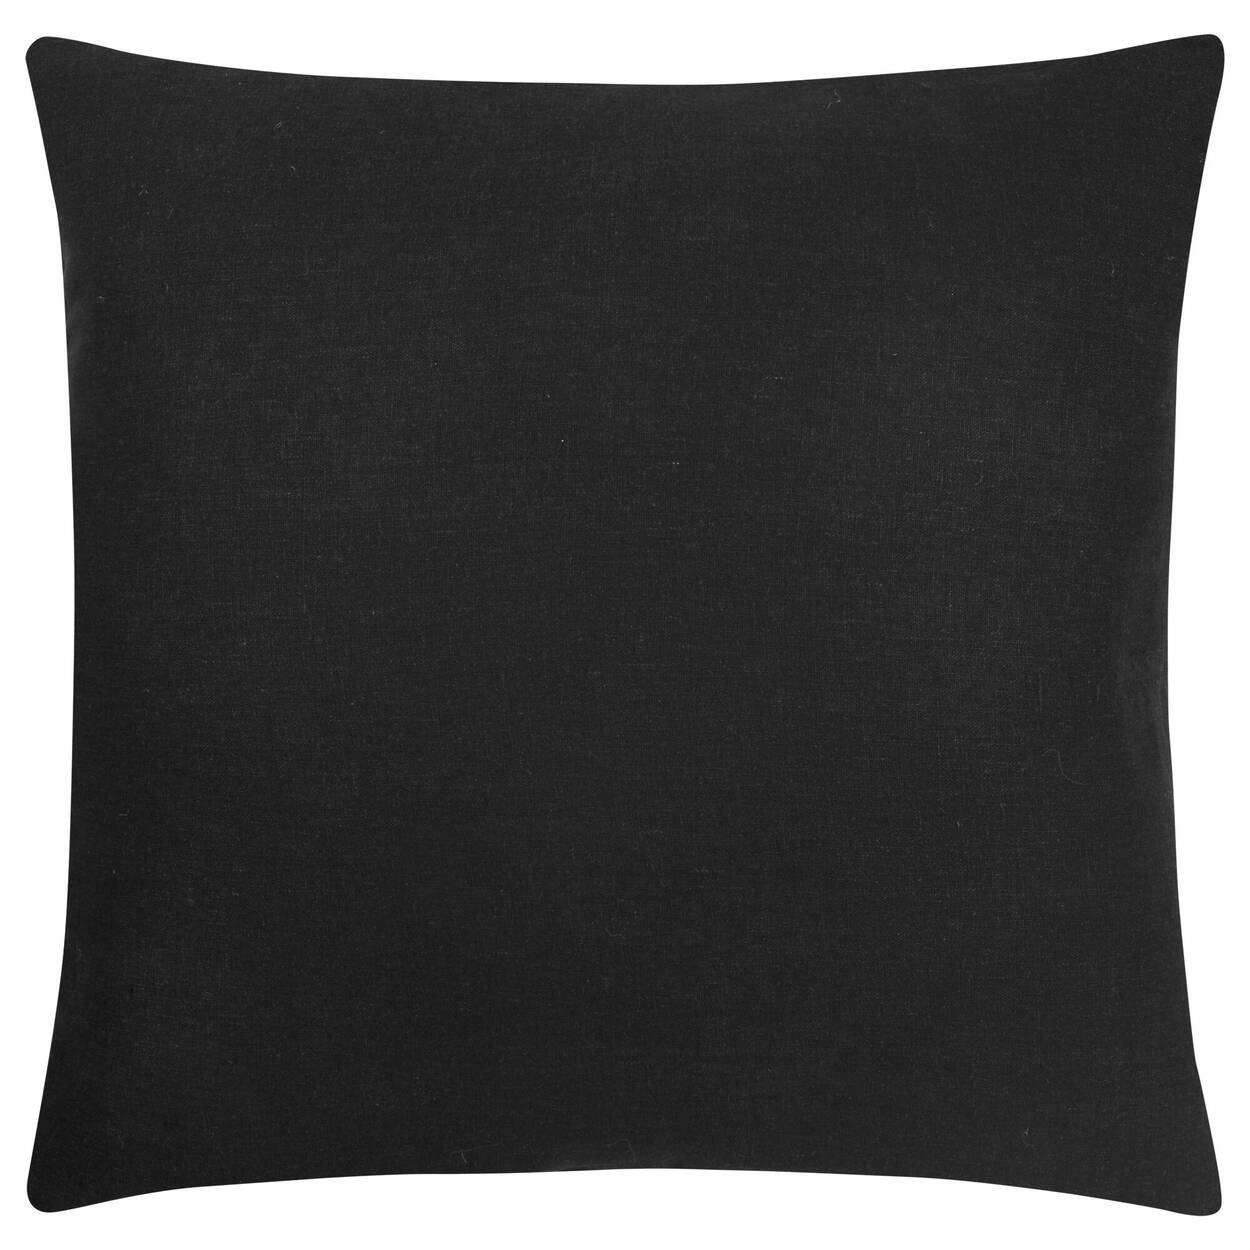 "Tena Decorative Pillow 19"" X 19"""